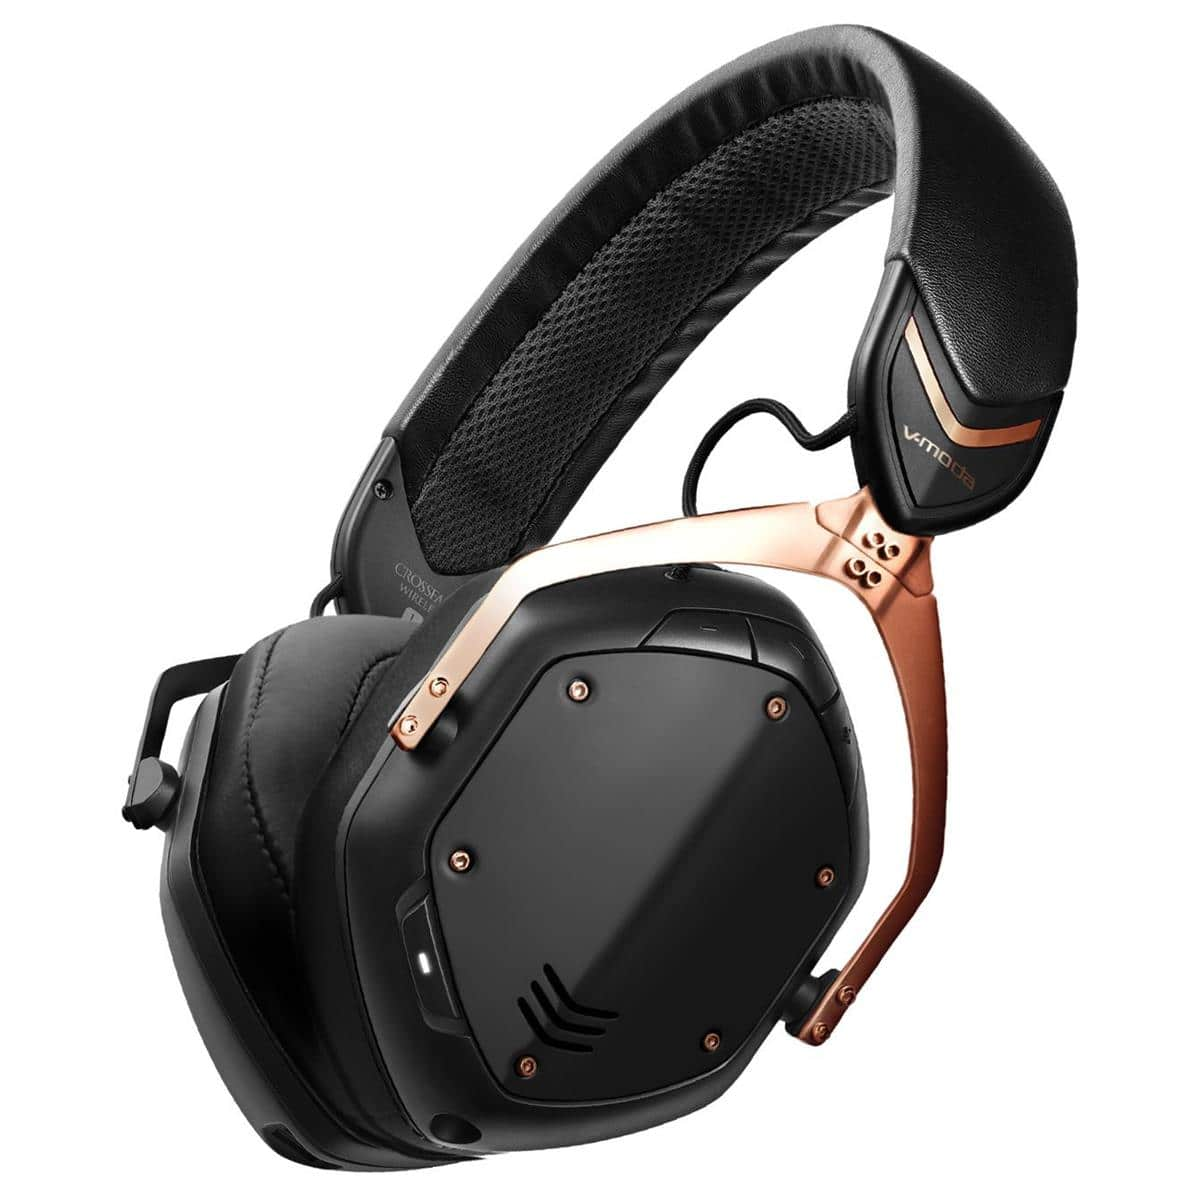 V-moda Crossfade II Over-Ear Wireless Headphones (rose gold) $250 + free s/h